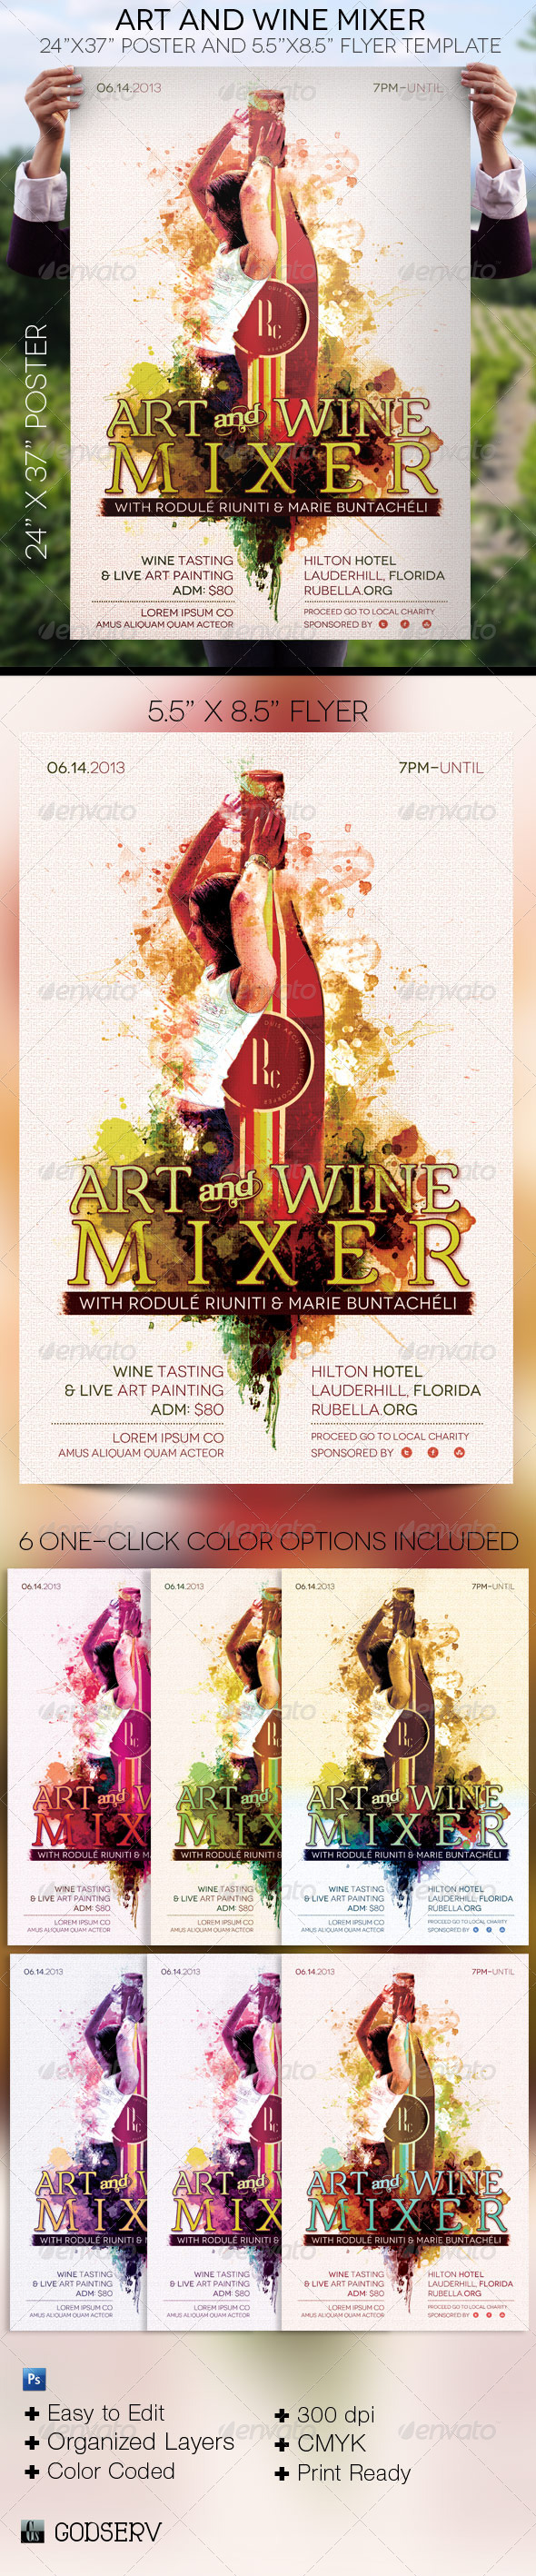 Art and Wine Mixer Poster and Flyer Template - Signage Print Templates